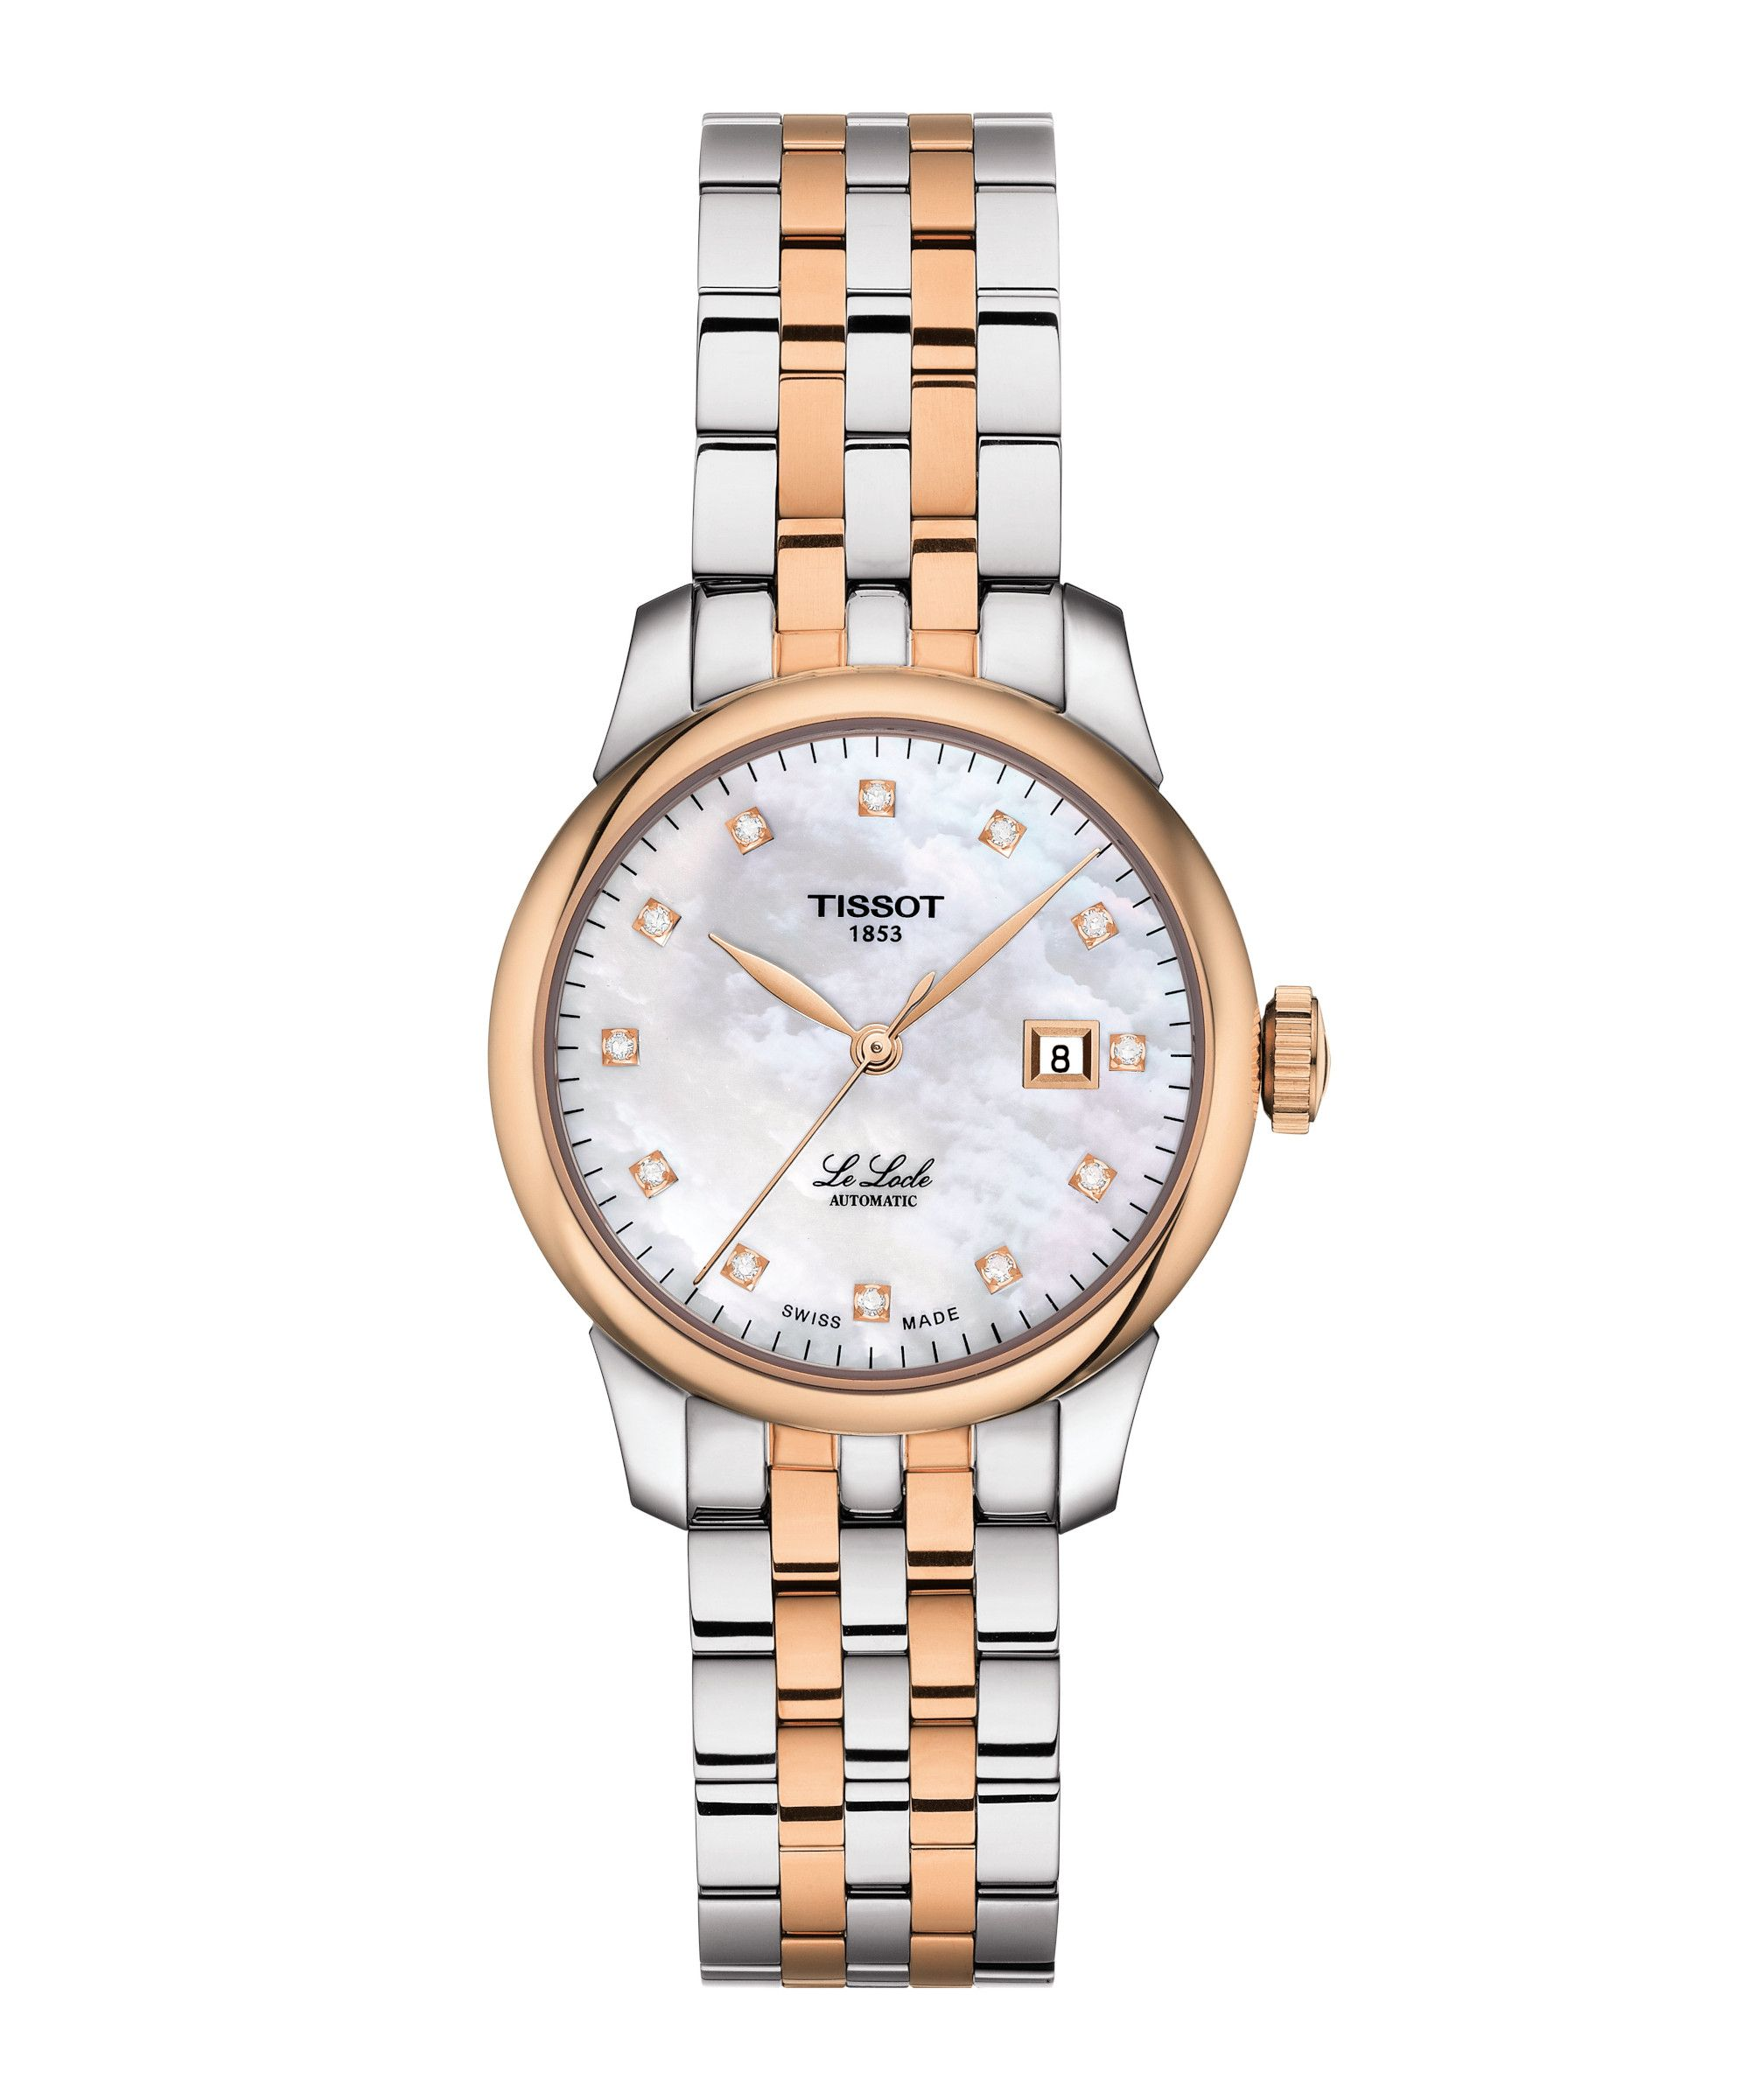 Tissot Le Locle Automatic Lady - 15220